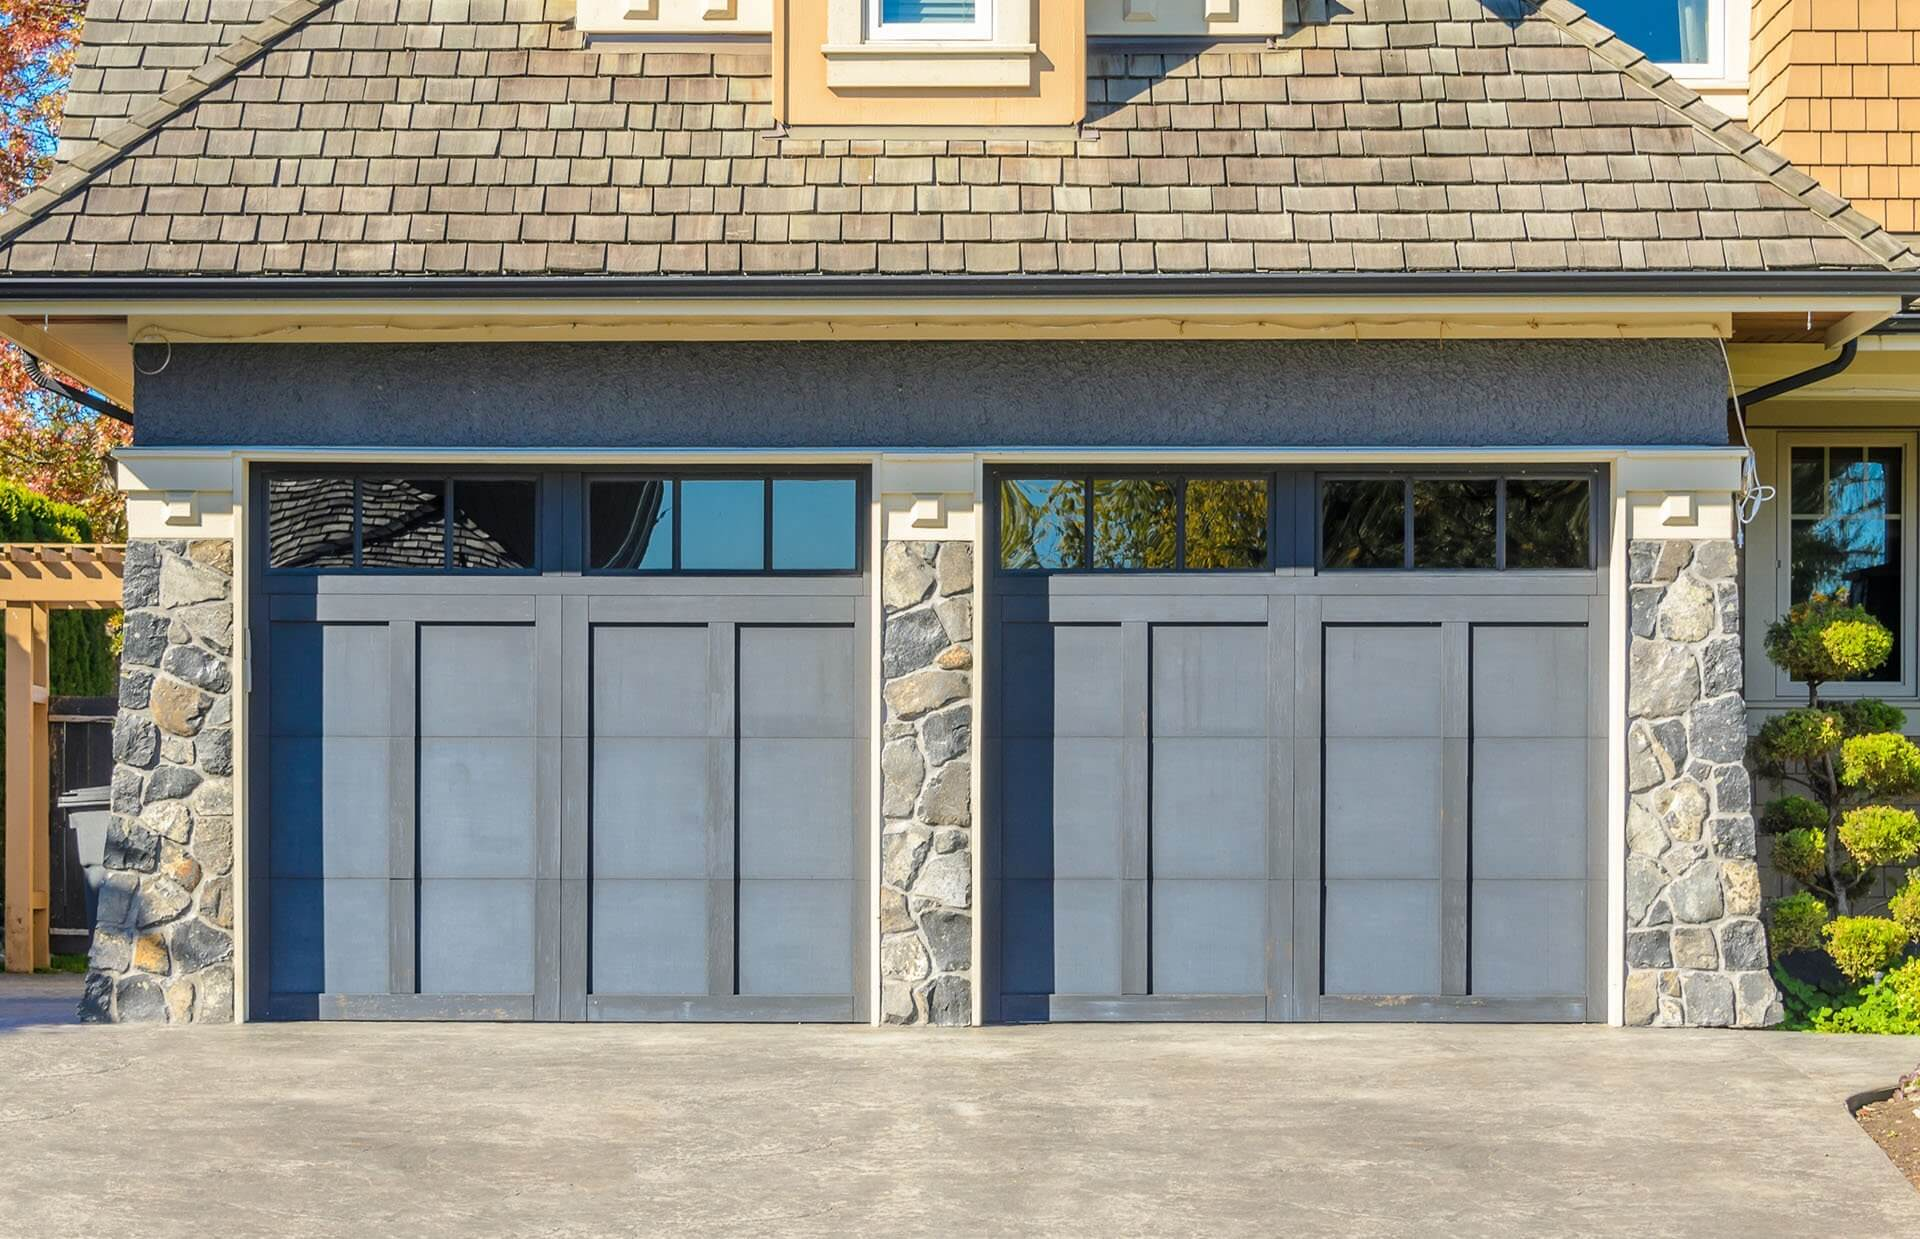 Garage door installers greenville sc ppi blog for Garage door repair lawrenceville